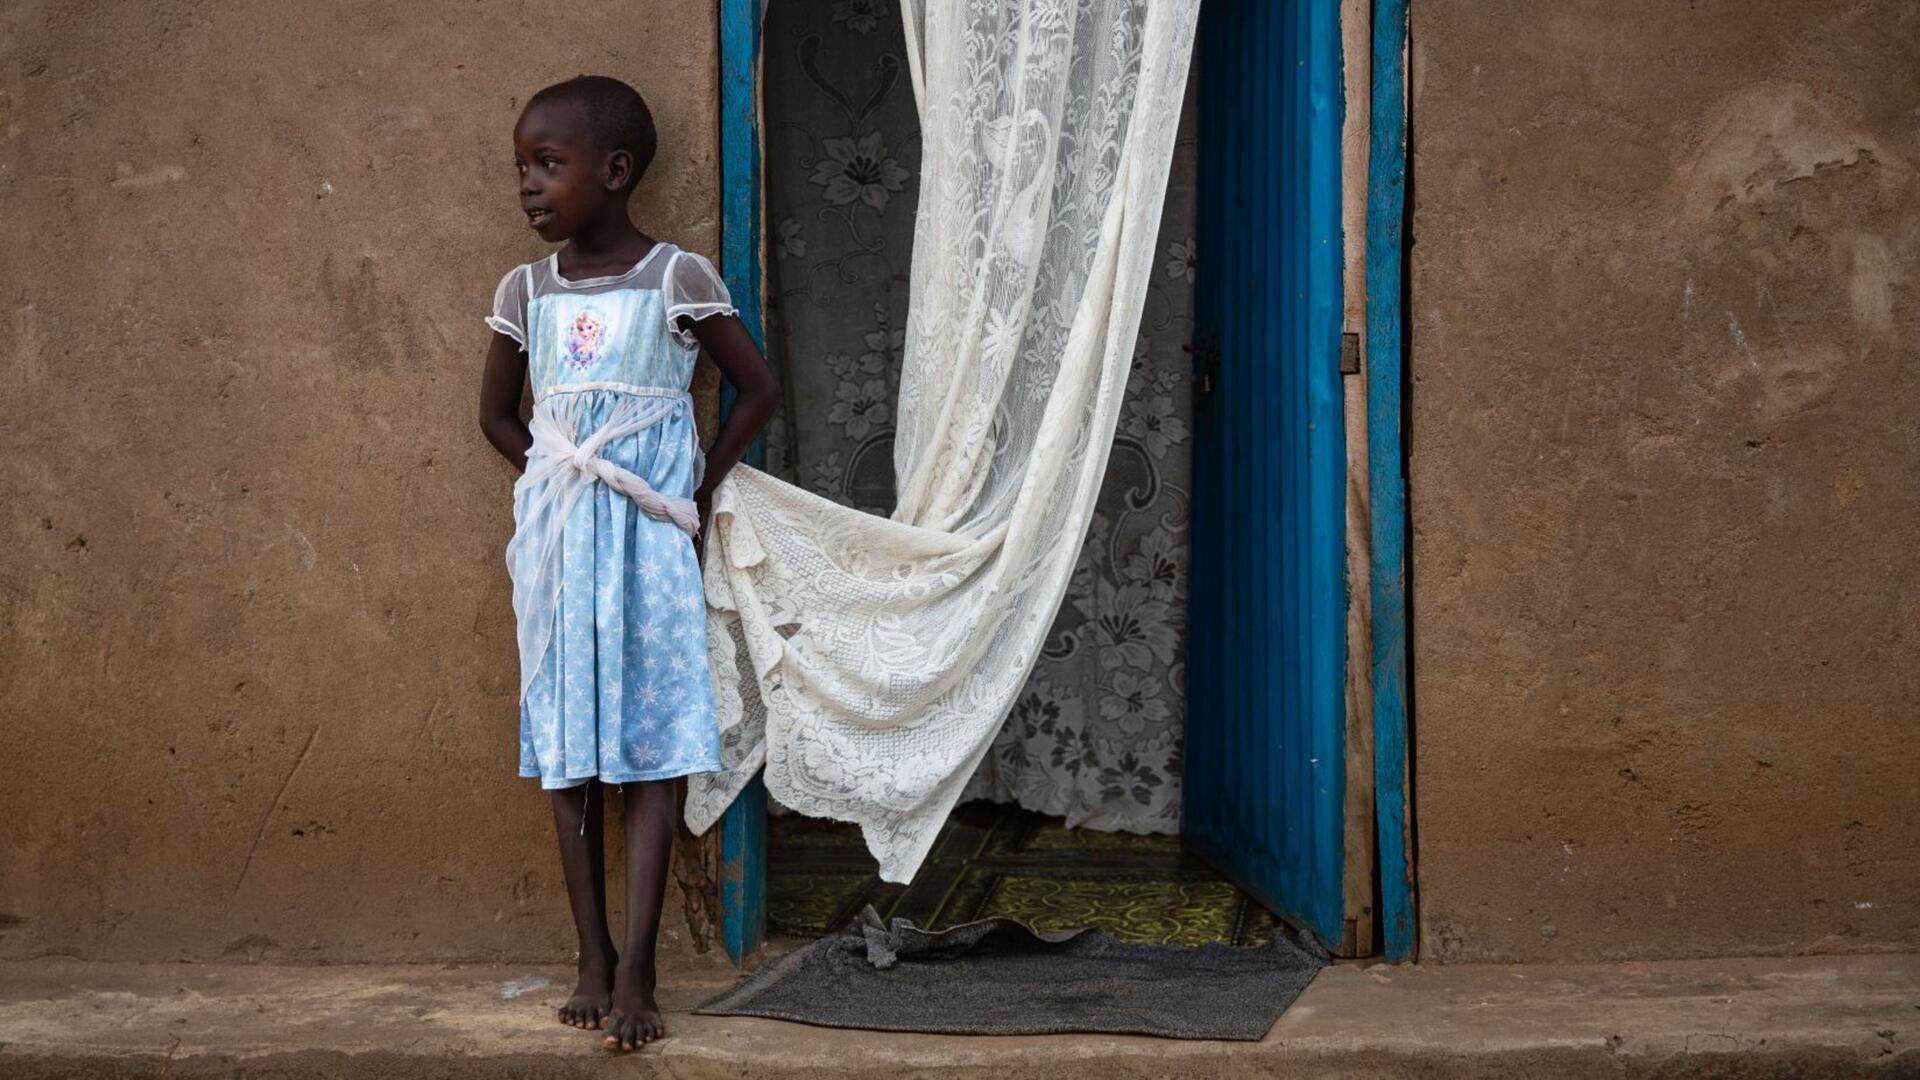 Foni Grace's six-year-old daughter, Nancy, stands outside their home. She is looking to the side and holding the edge of a white curtain.